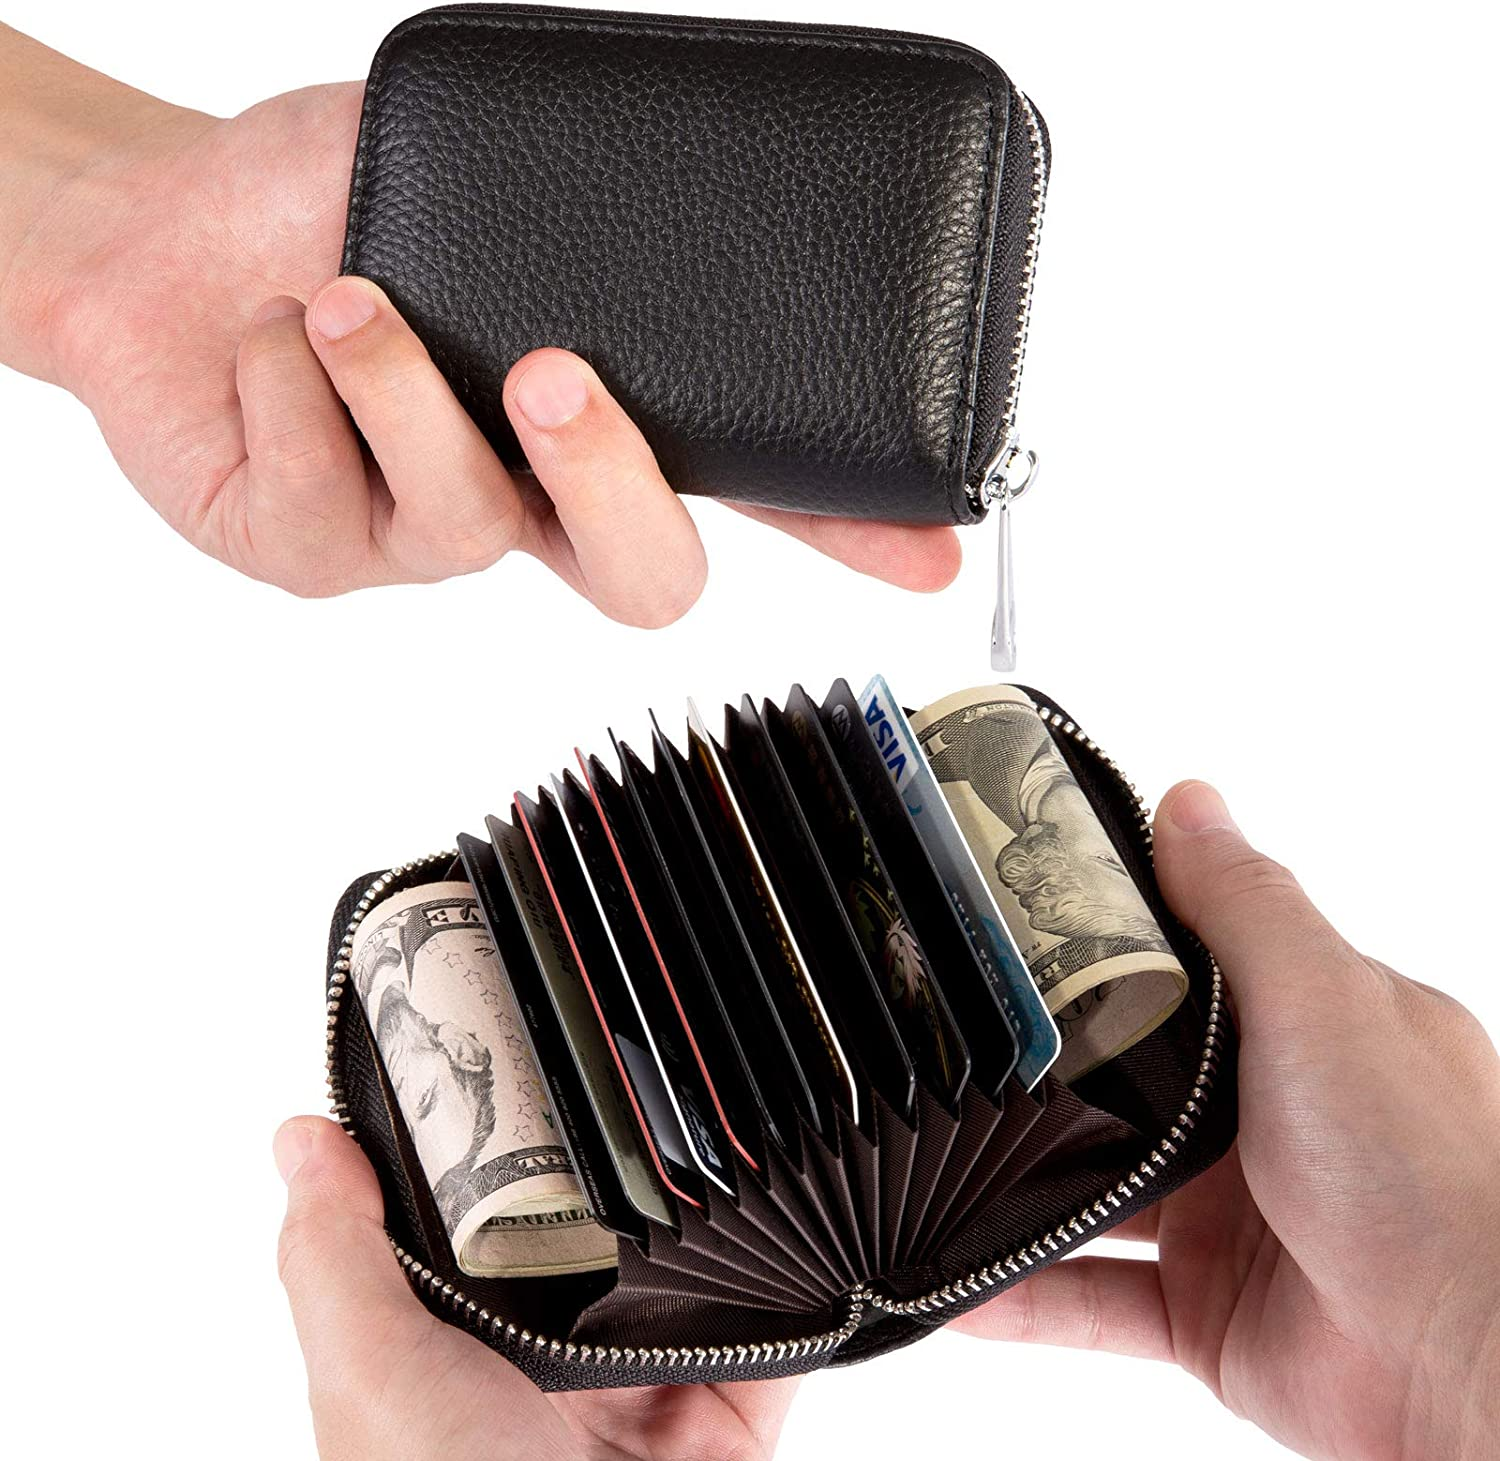 Kesoto Genuine Leather Credit Card Holder Zipper Wallet With 12 Card Slots